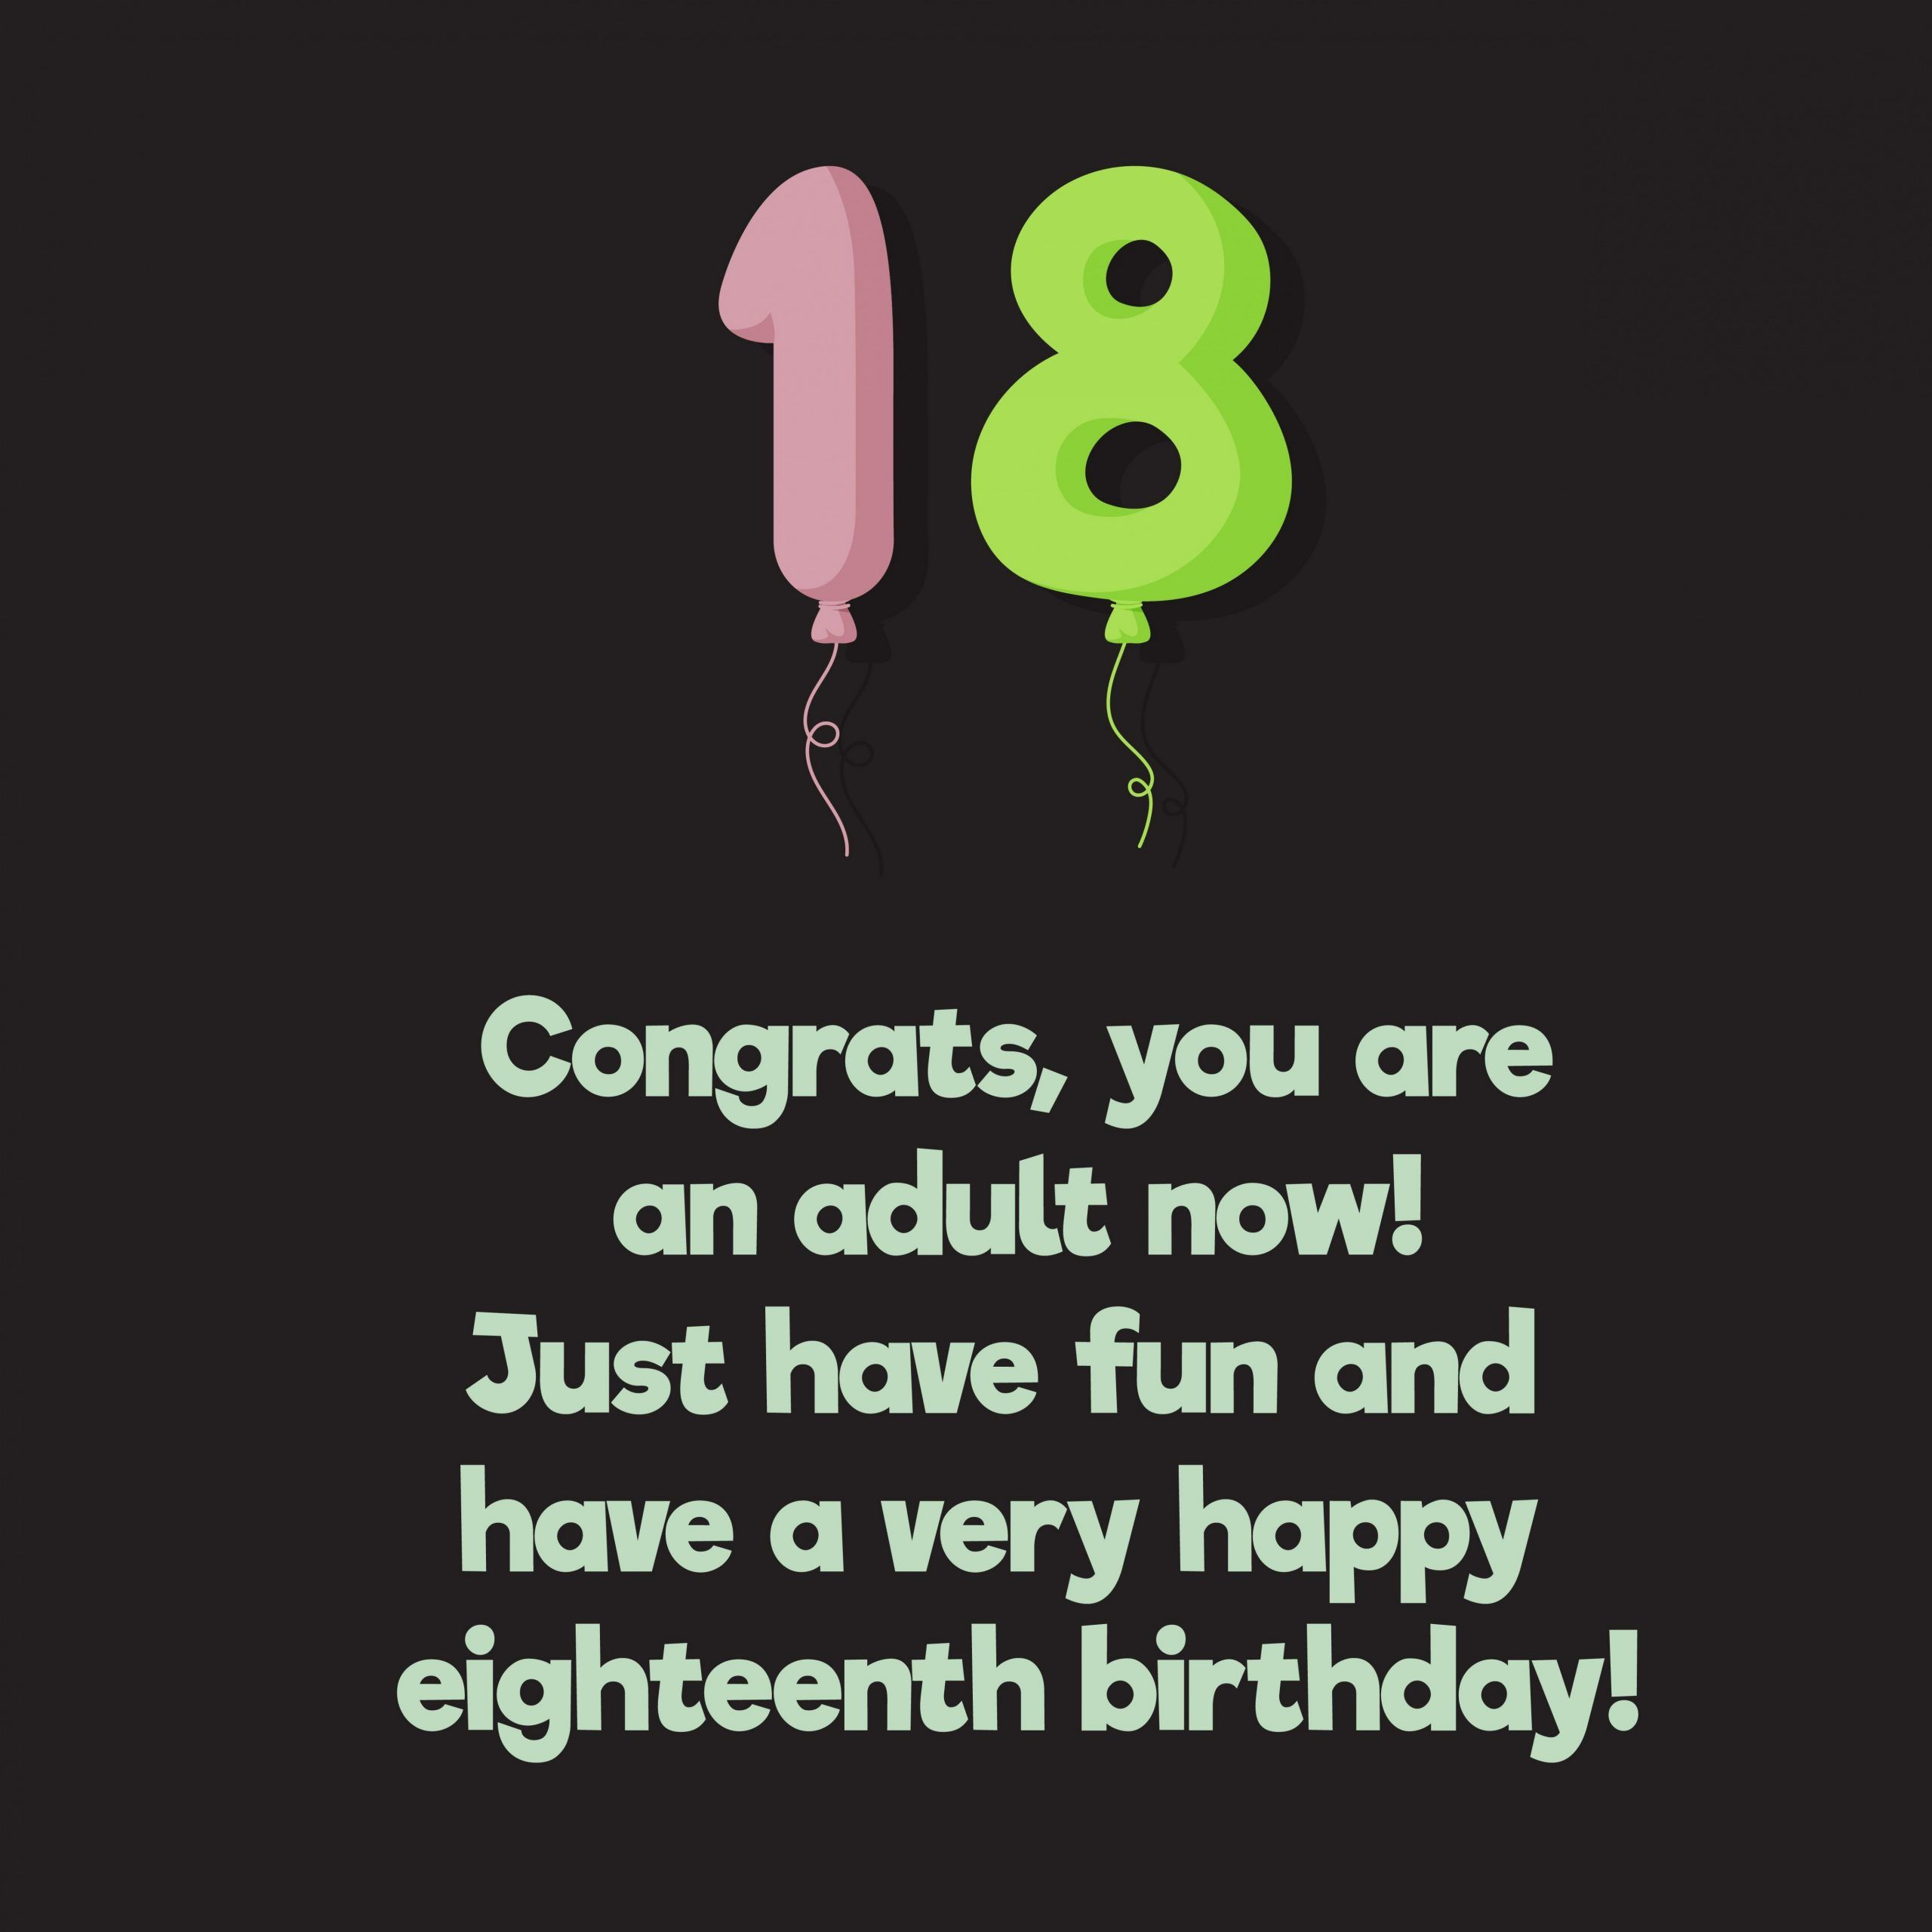 11 Awesome 18th Birthday Wishes In 2021 Happy 18th Birthday Quotes Happy Birthday Wishes Quotes Friend Birthday Quotes